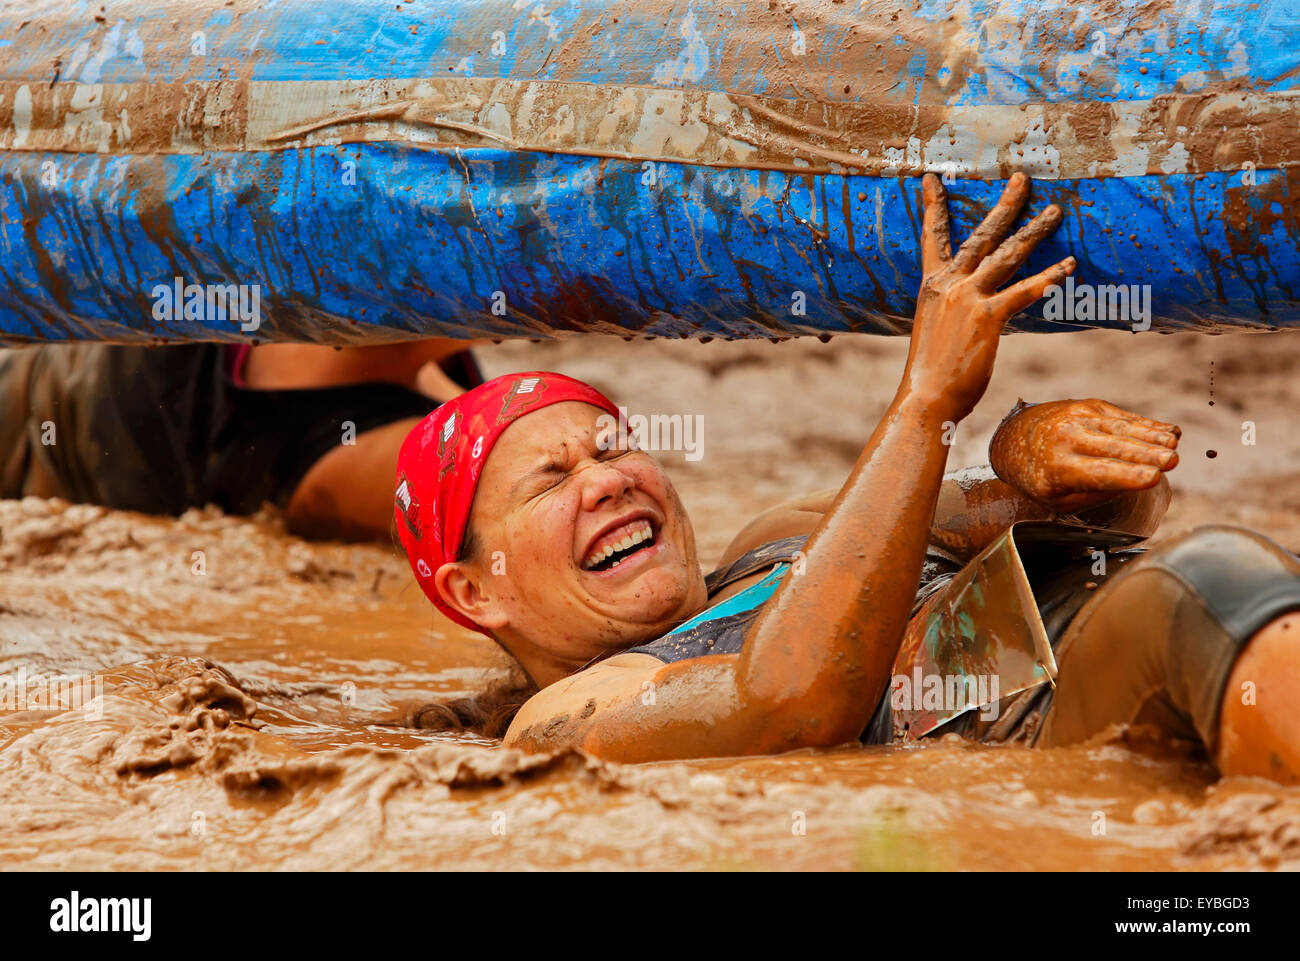 Melissa Gardner tackles a tricky area at the Mud Run for Heart July 25, 2015, Waterford, New Brunswick, Canada. - Stock Image